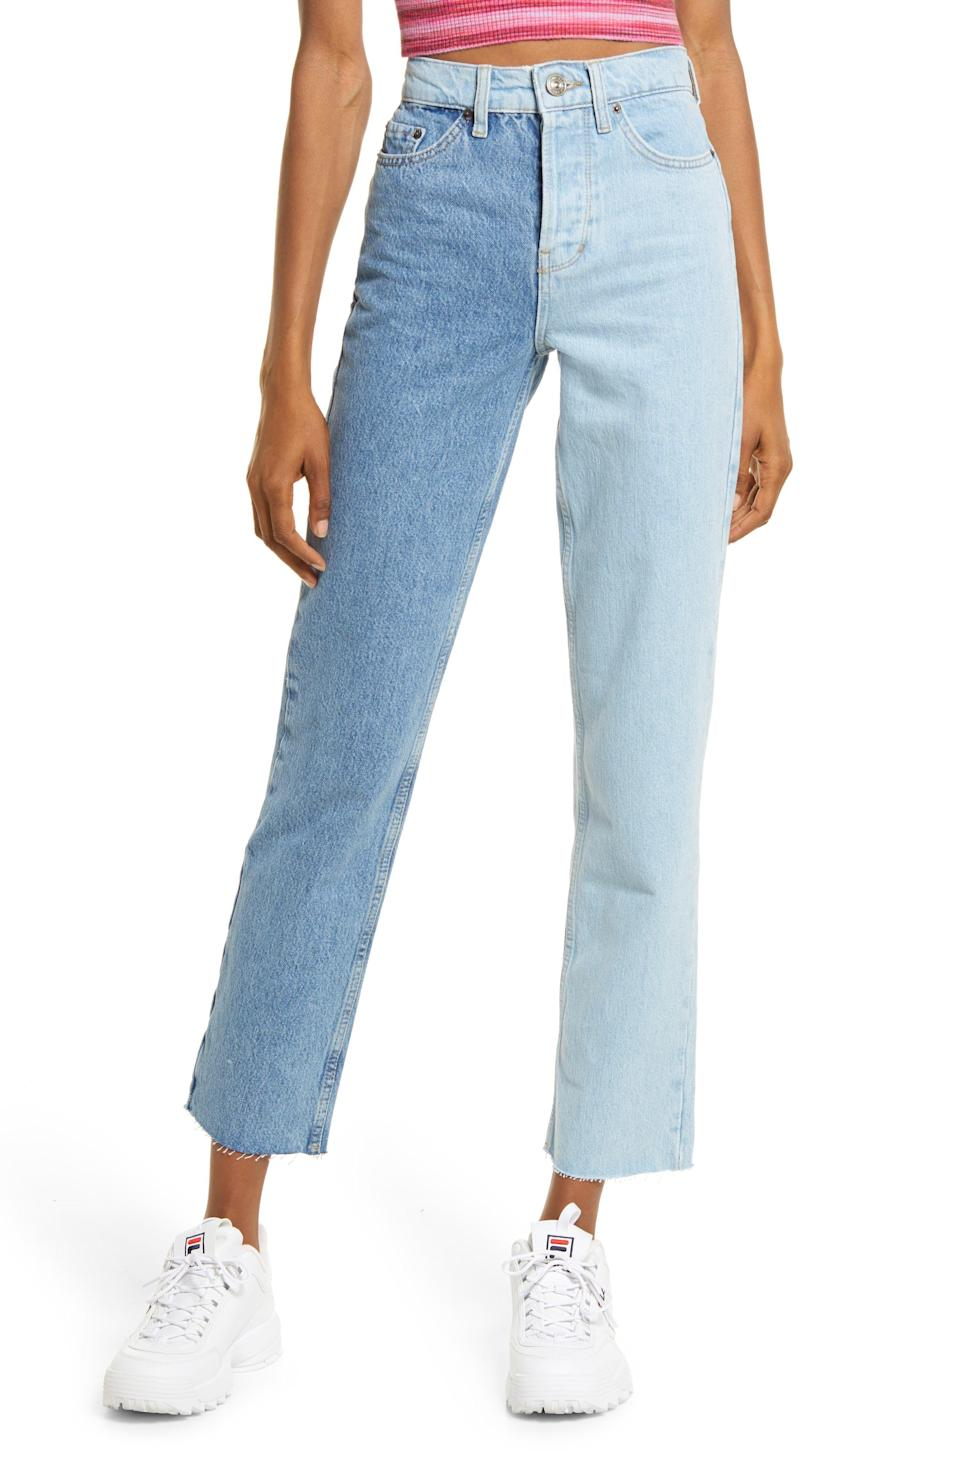 """<p><strong>BDG</strong></p><p>nordstrom.com</p><p><strong>$69.00</strong></p><p><a href=""""https://go.redirectingat.com?id=74968X1596630&url=https%3A%2F%2Fwww.nordstrom.com%2Fs%2Fbdg-urban-outfitters-two-tone-pax-high-waist-straight-leg-jeans-summer-blue%2F5950605&sref=https%3A%2F%2Fwww.womenshealthmag.com%2Flife%2Fg37080961%2Fbest-boyfriend-jeans%2F"""" rel=""""nofollow noopener"""" target=""""_blank"""" data-ylk=""""slk:Shop Now"""" class=""""link rapid-noclick-resp"""">Shop Now</a></p><p>Can't decide between a light or classic wash? Now you don't have to. Instagram influencers are obsessed with these jeans—they're great for photoshoots and are surprisingly versatile, too.</p>"""